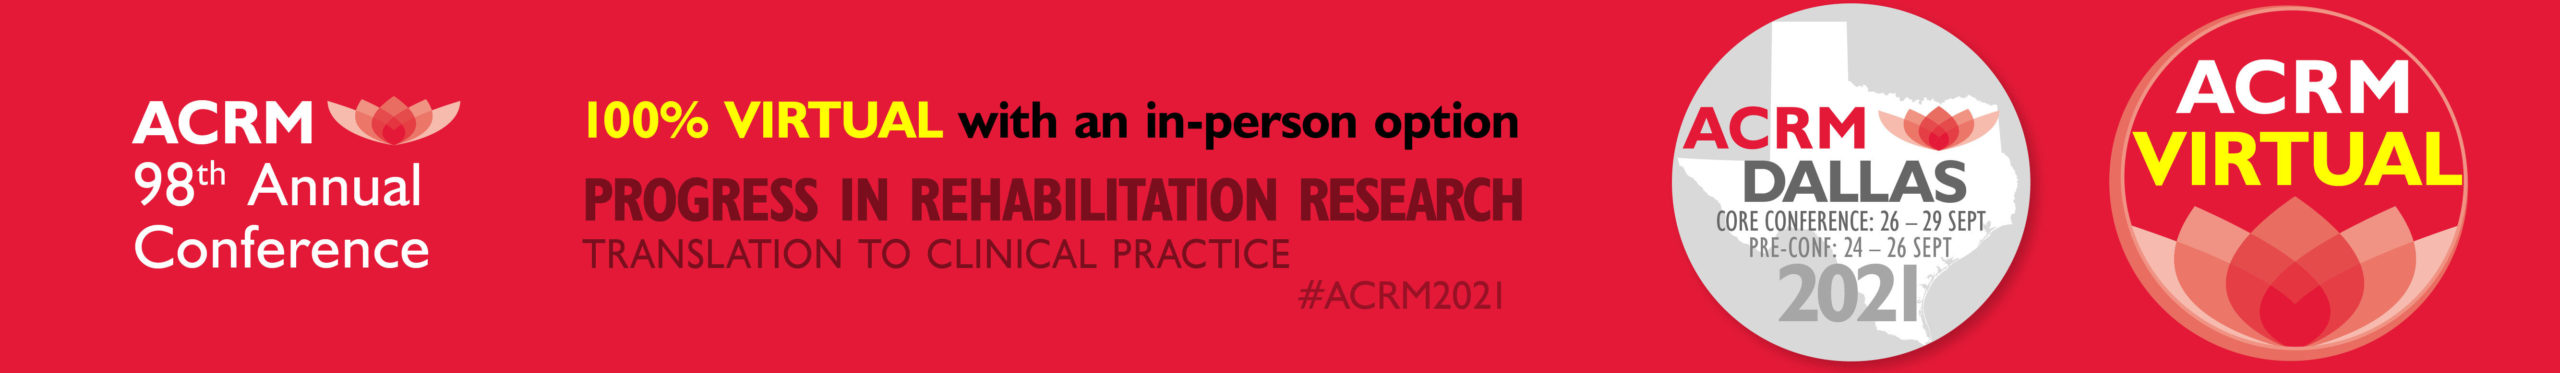 98th Annual ACRM Conference 2021 VIRTUAL and in-person DALLAS